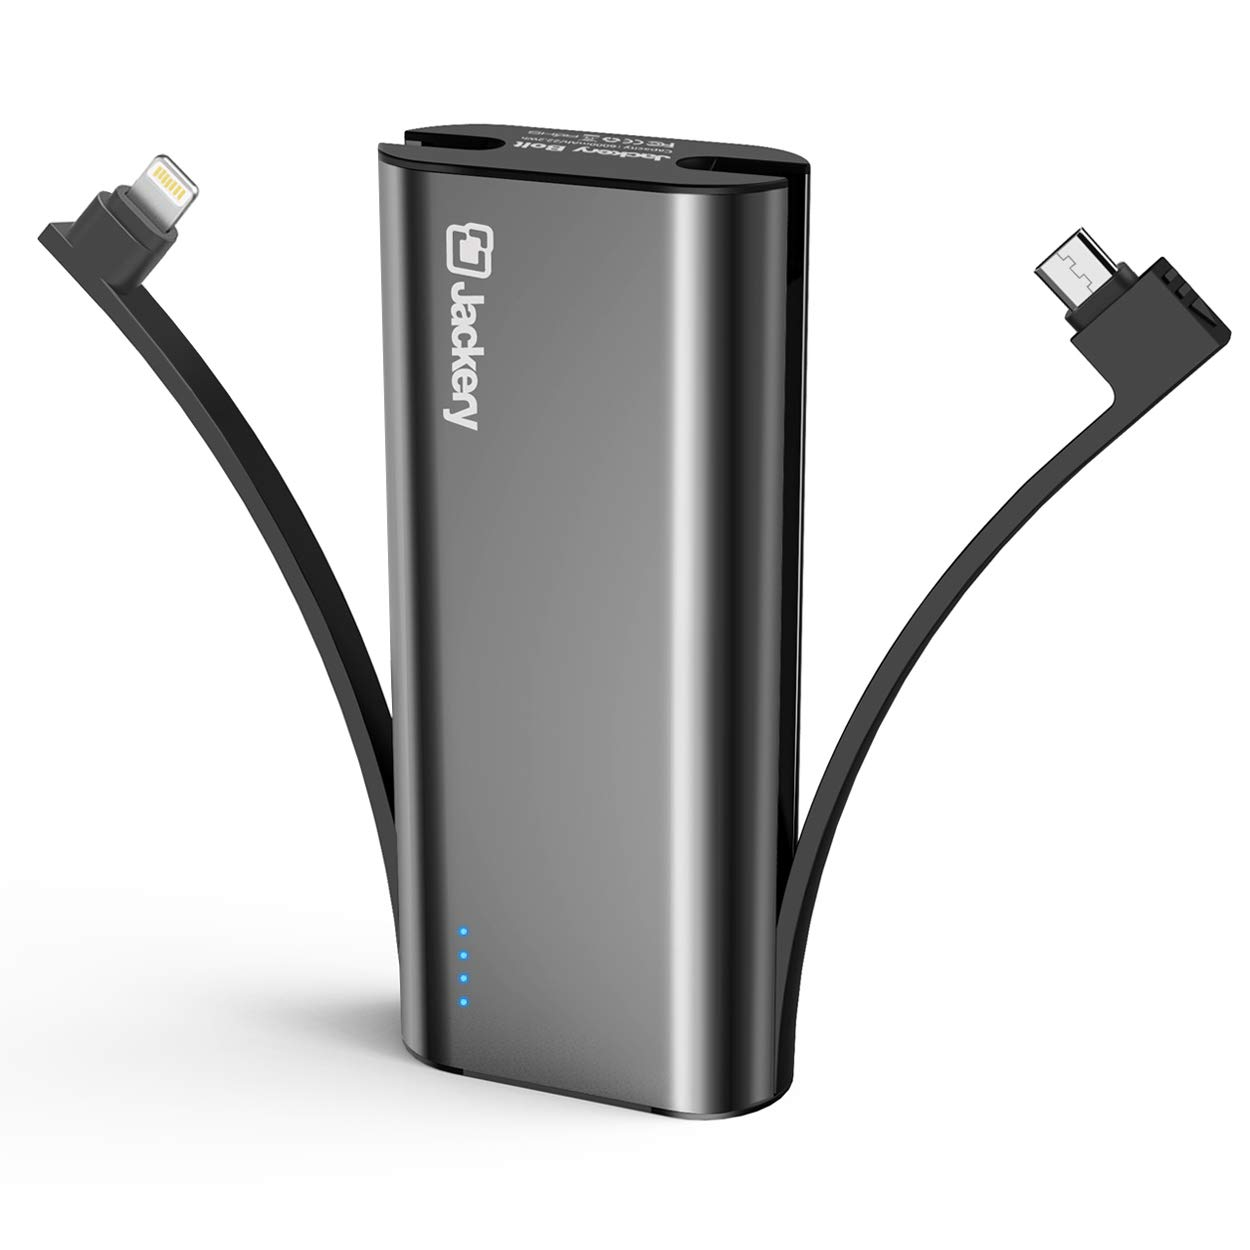 Portable Charger Jackery Bolt 6000 mAh - Power Bank with Built in Lightning Cable [Apple MFi Certified] iPhone Battery Charger External Battery Pack, Twice as Fast as Original iPhone Charger by Jackery